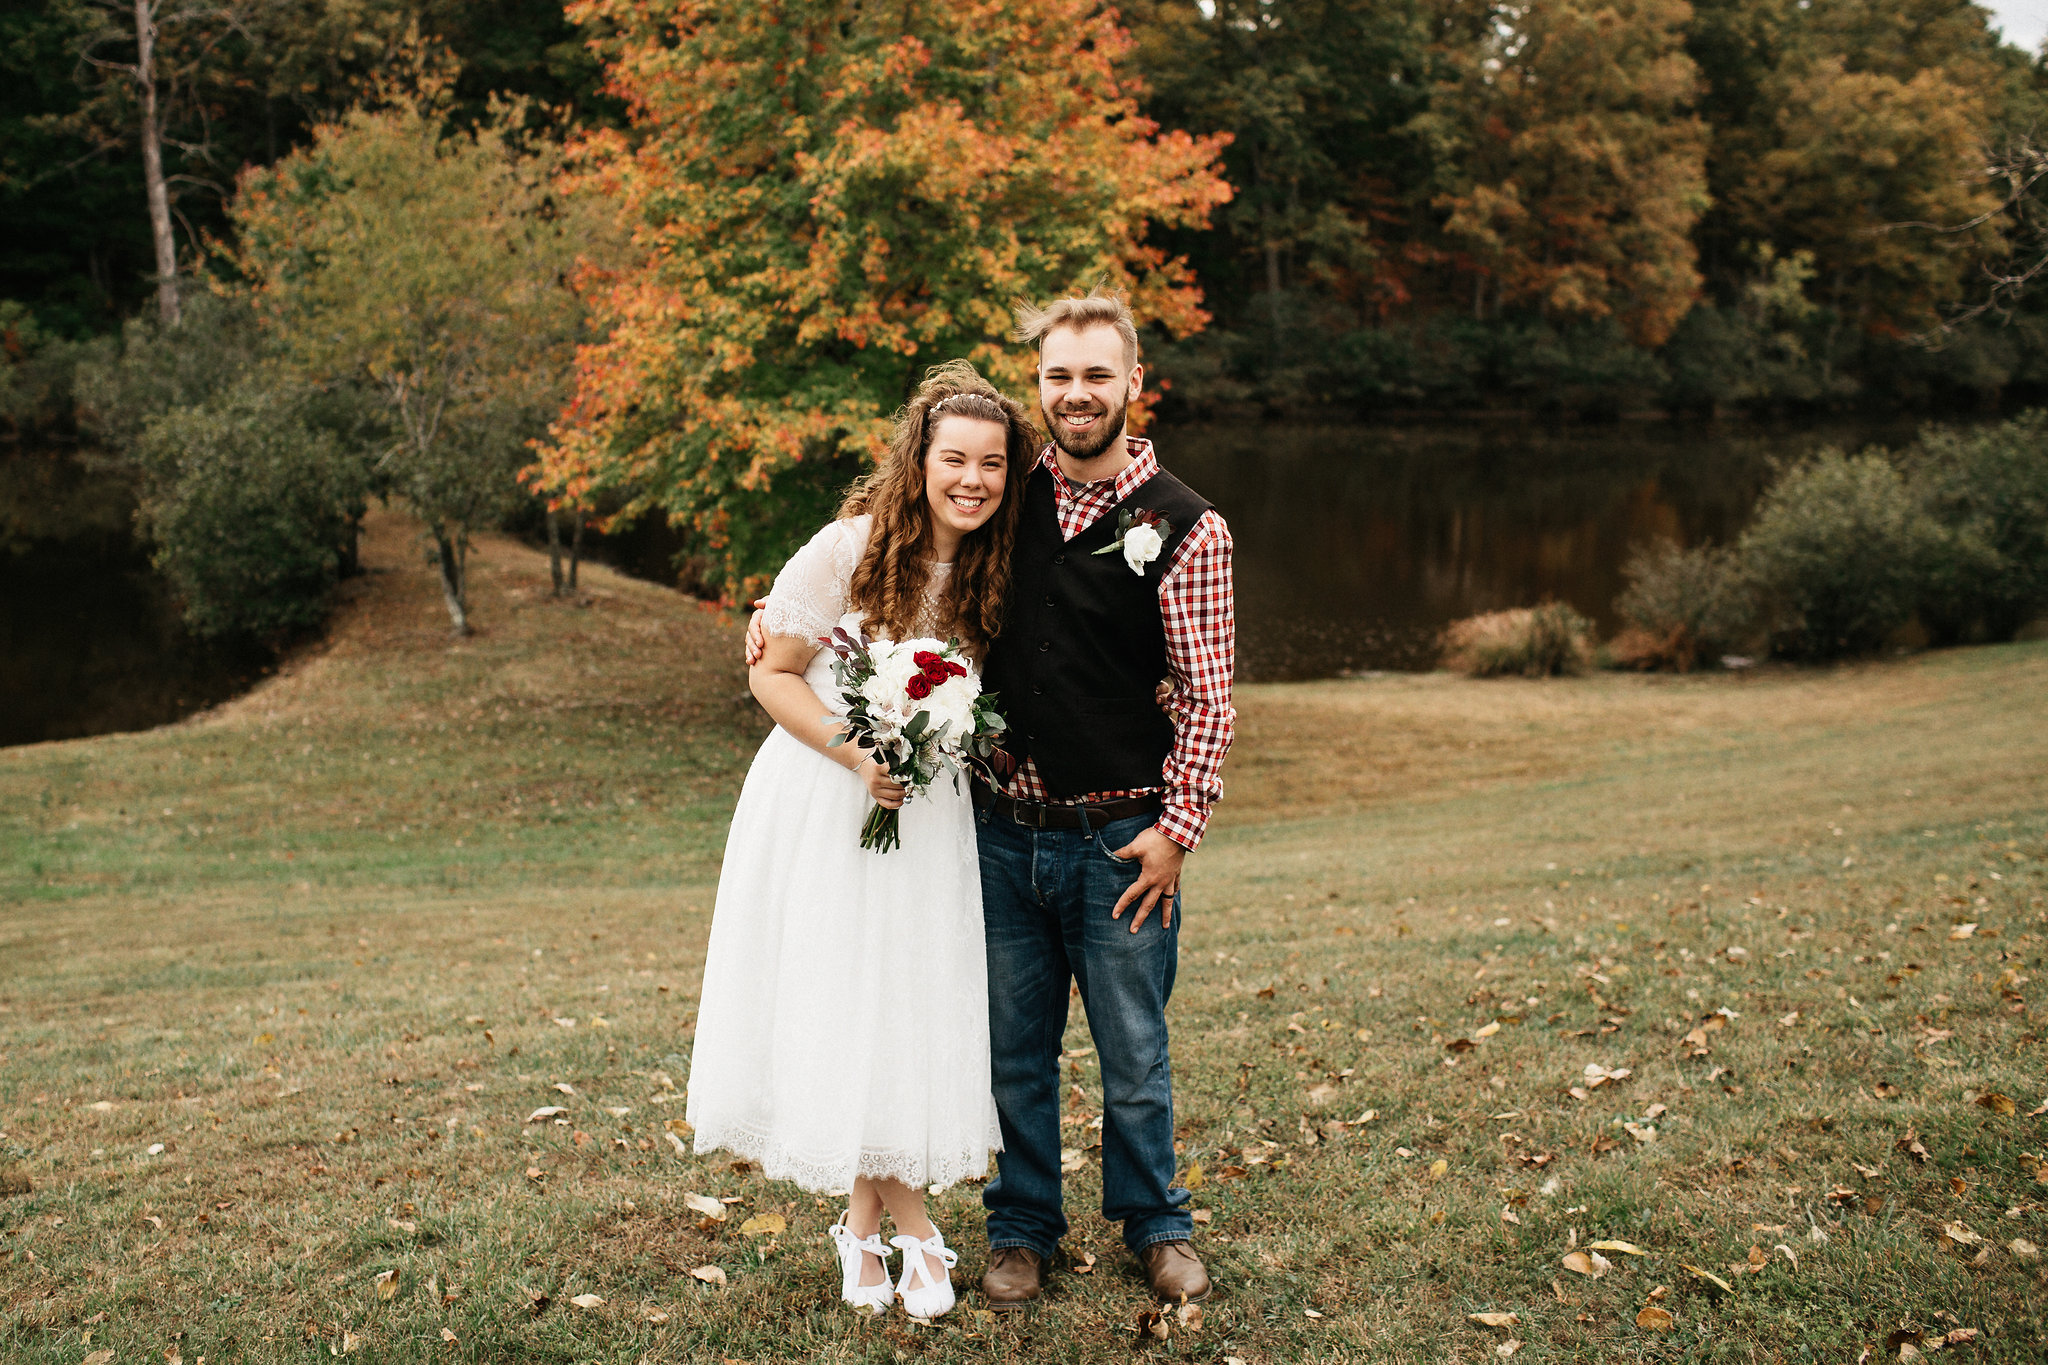 Caitlin&CodyMarried2017-11-03at19.19.39PM61.jpg